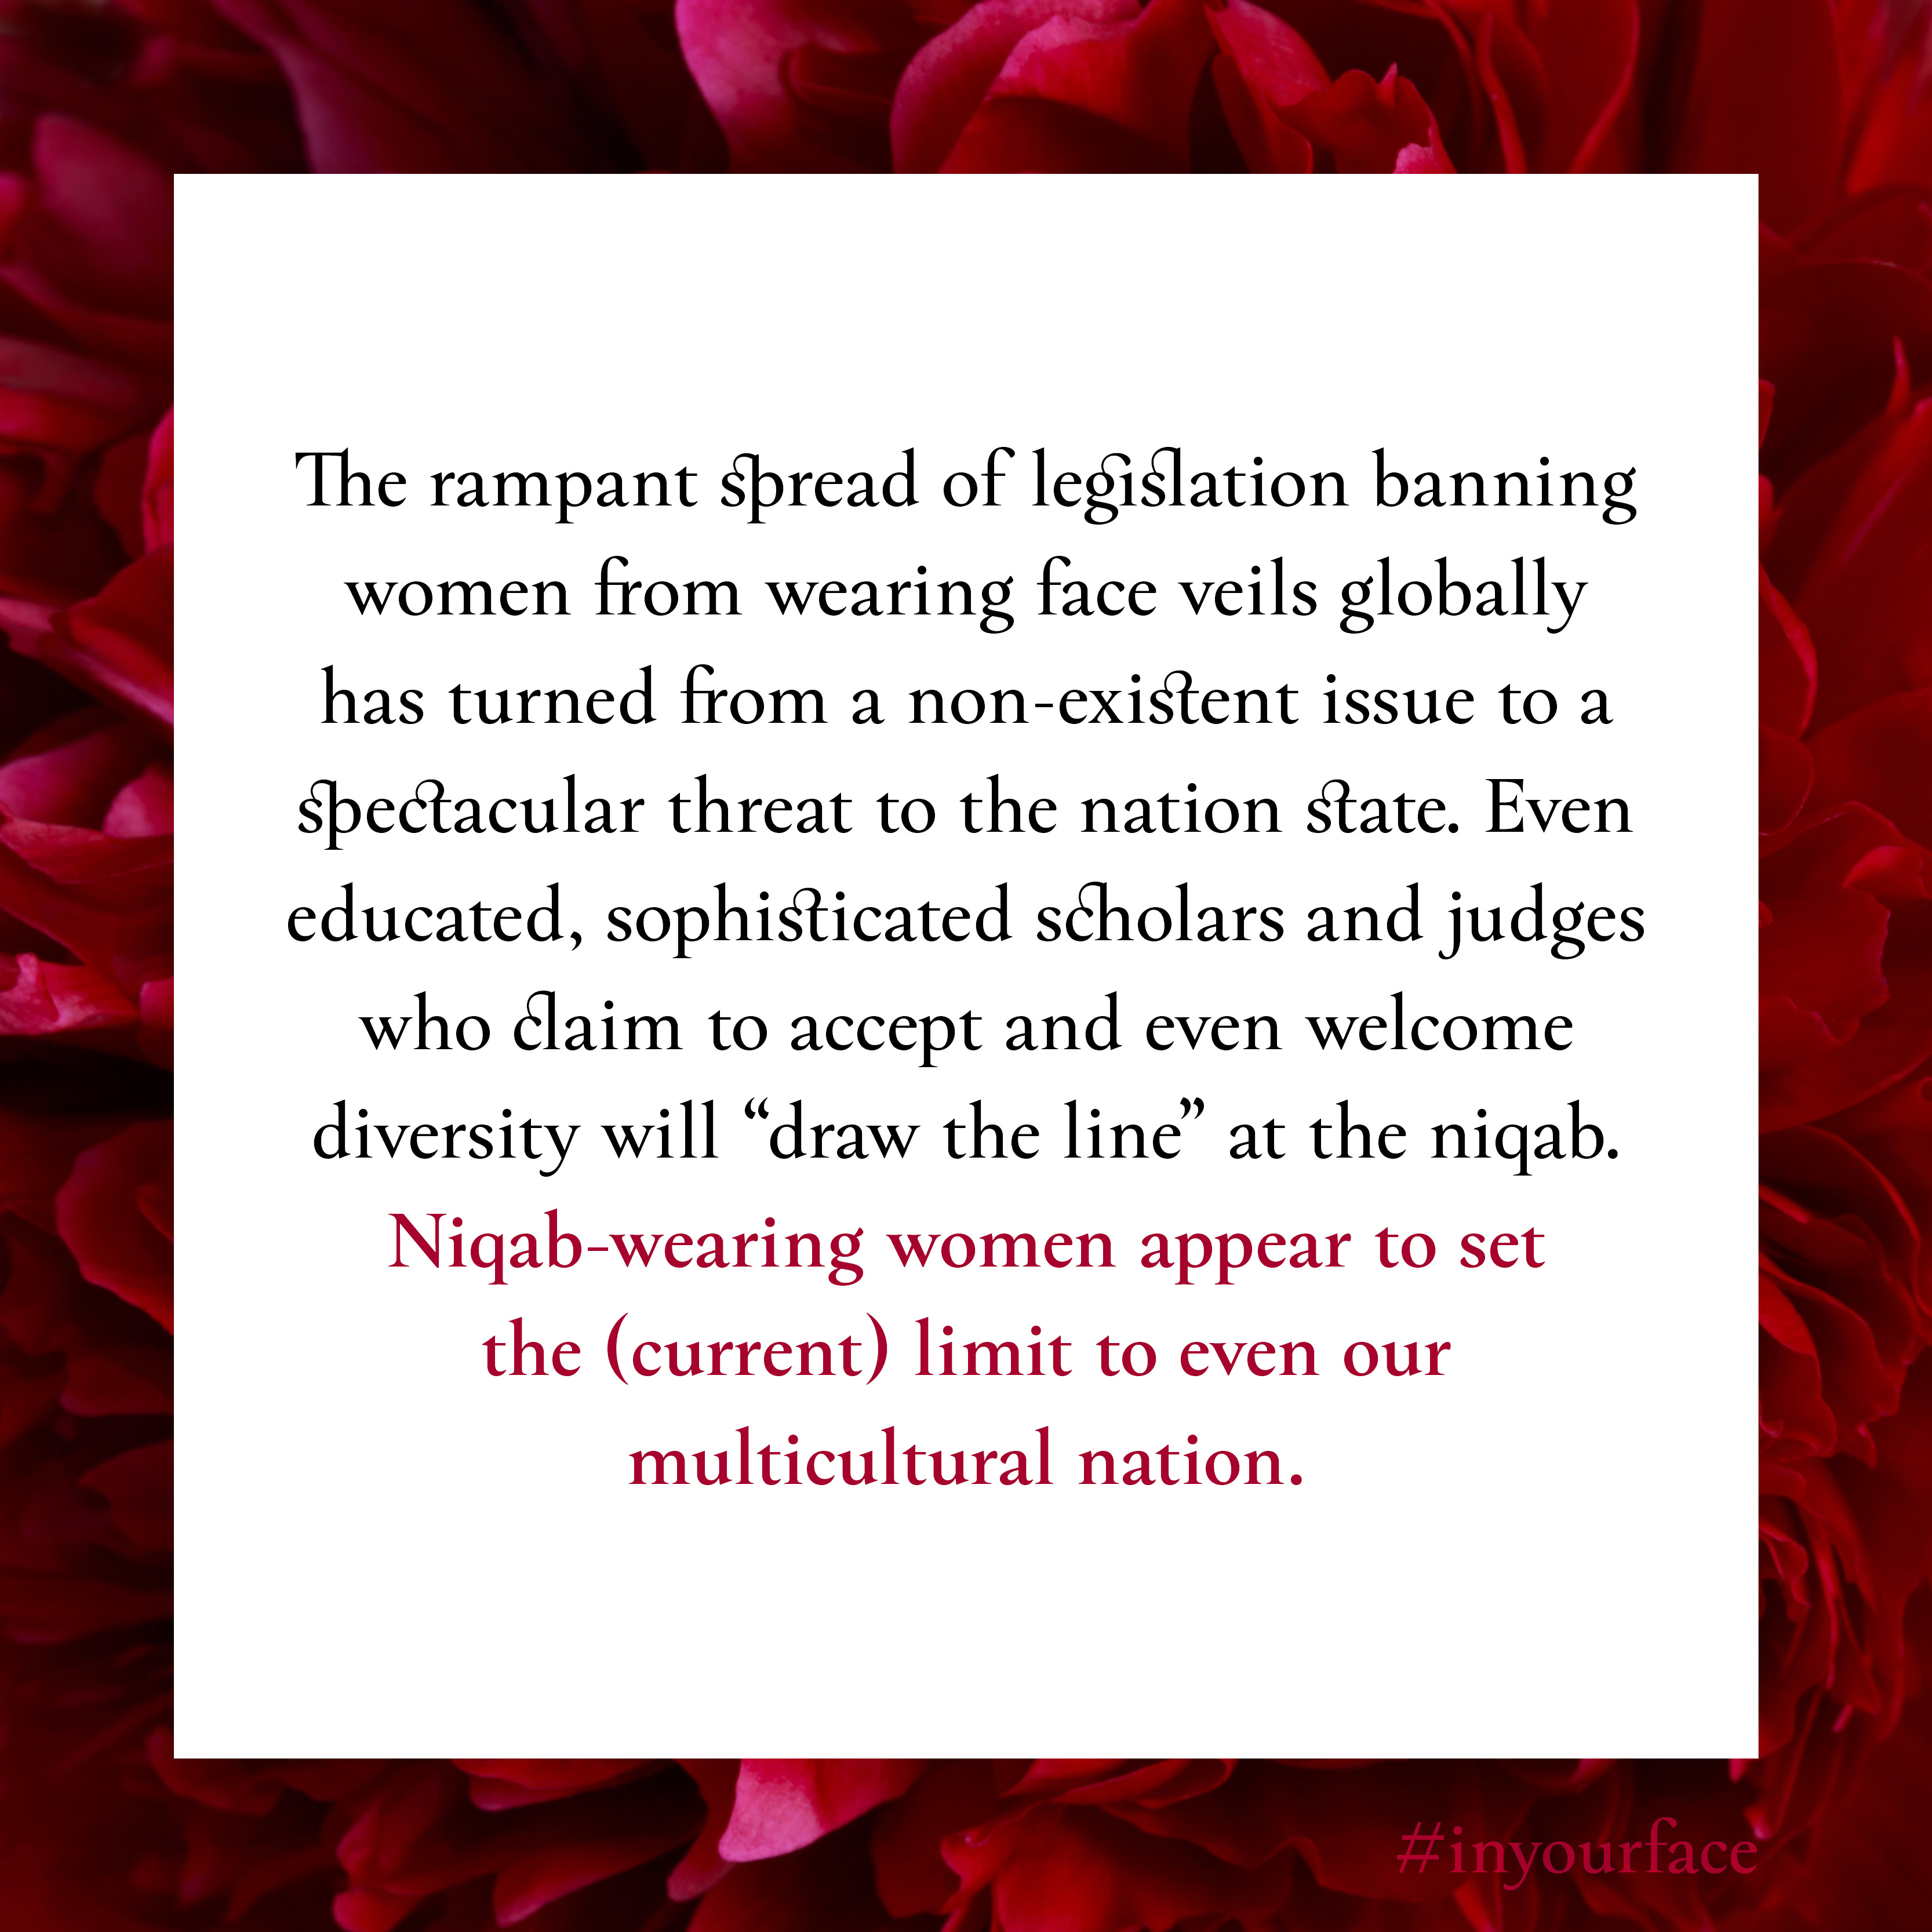 """Excerpt from In Your Face by Natasha Bakht. It reads: """"The rampant spread of legislation banning women from wearing face veils globally has turned from a non-existent issue to a spectacular threat to the nation state. Even educated, sophisticated scholars and judges who claim to accept and even welcome diversity will """"draw the line"""" at the niqab. Niqab-wearing women appear to set the (current) limit to even our multicultural nation. """""""